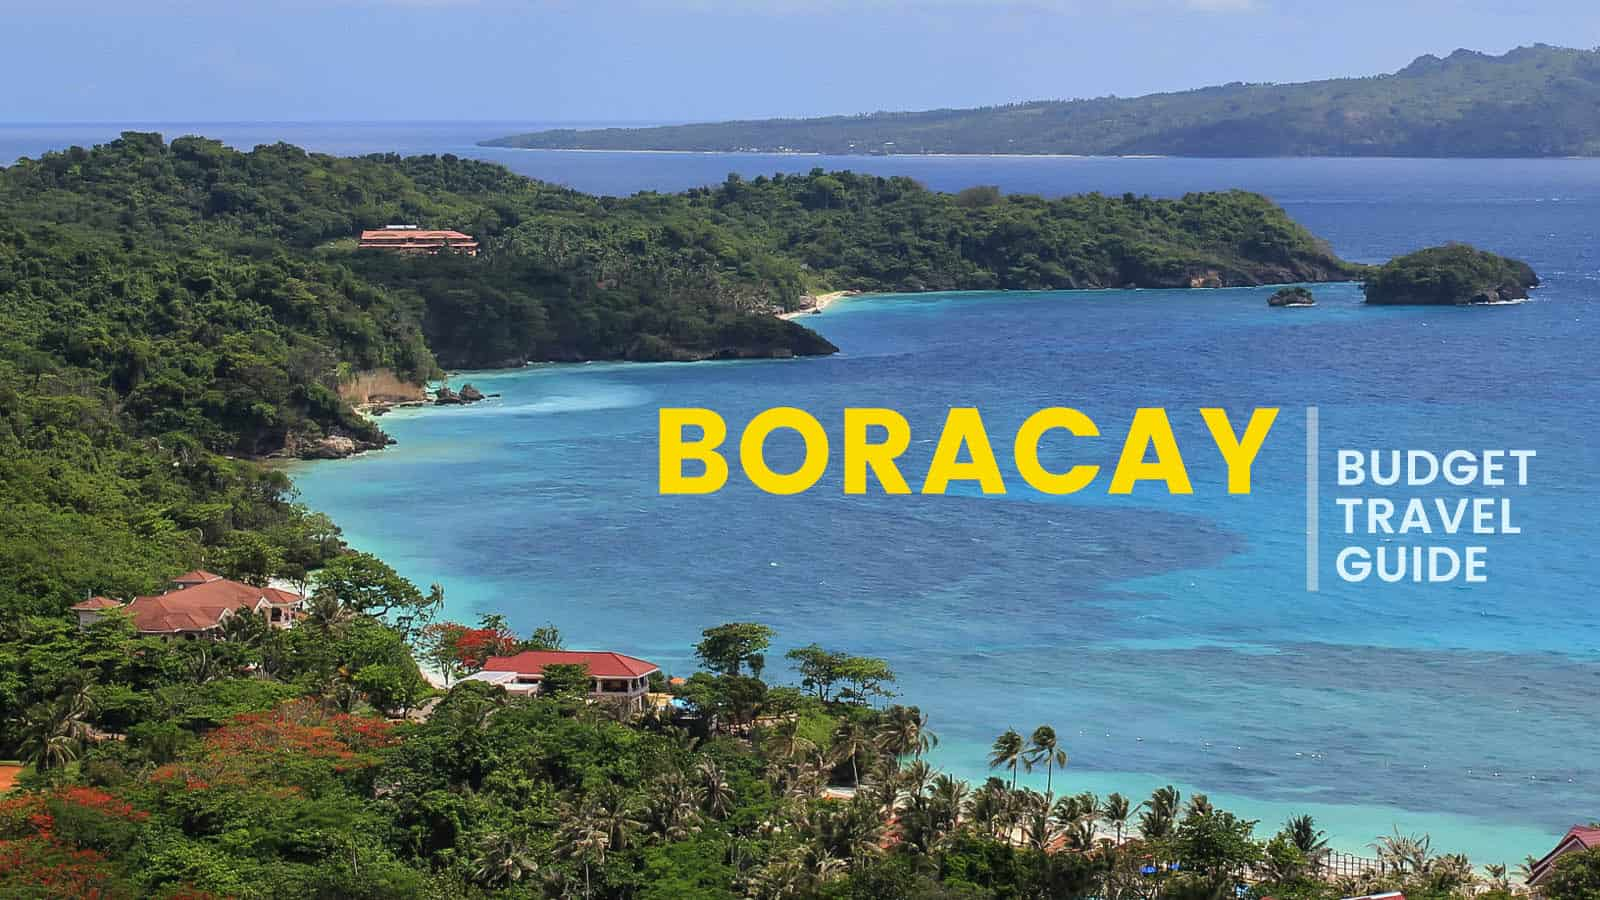 It's time to fly. What's waiting for you in Boracay Island?